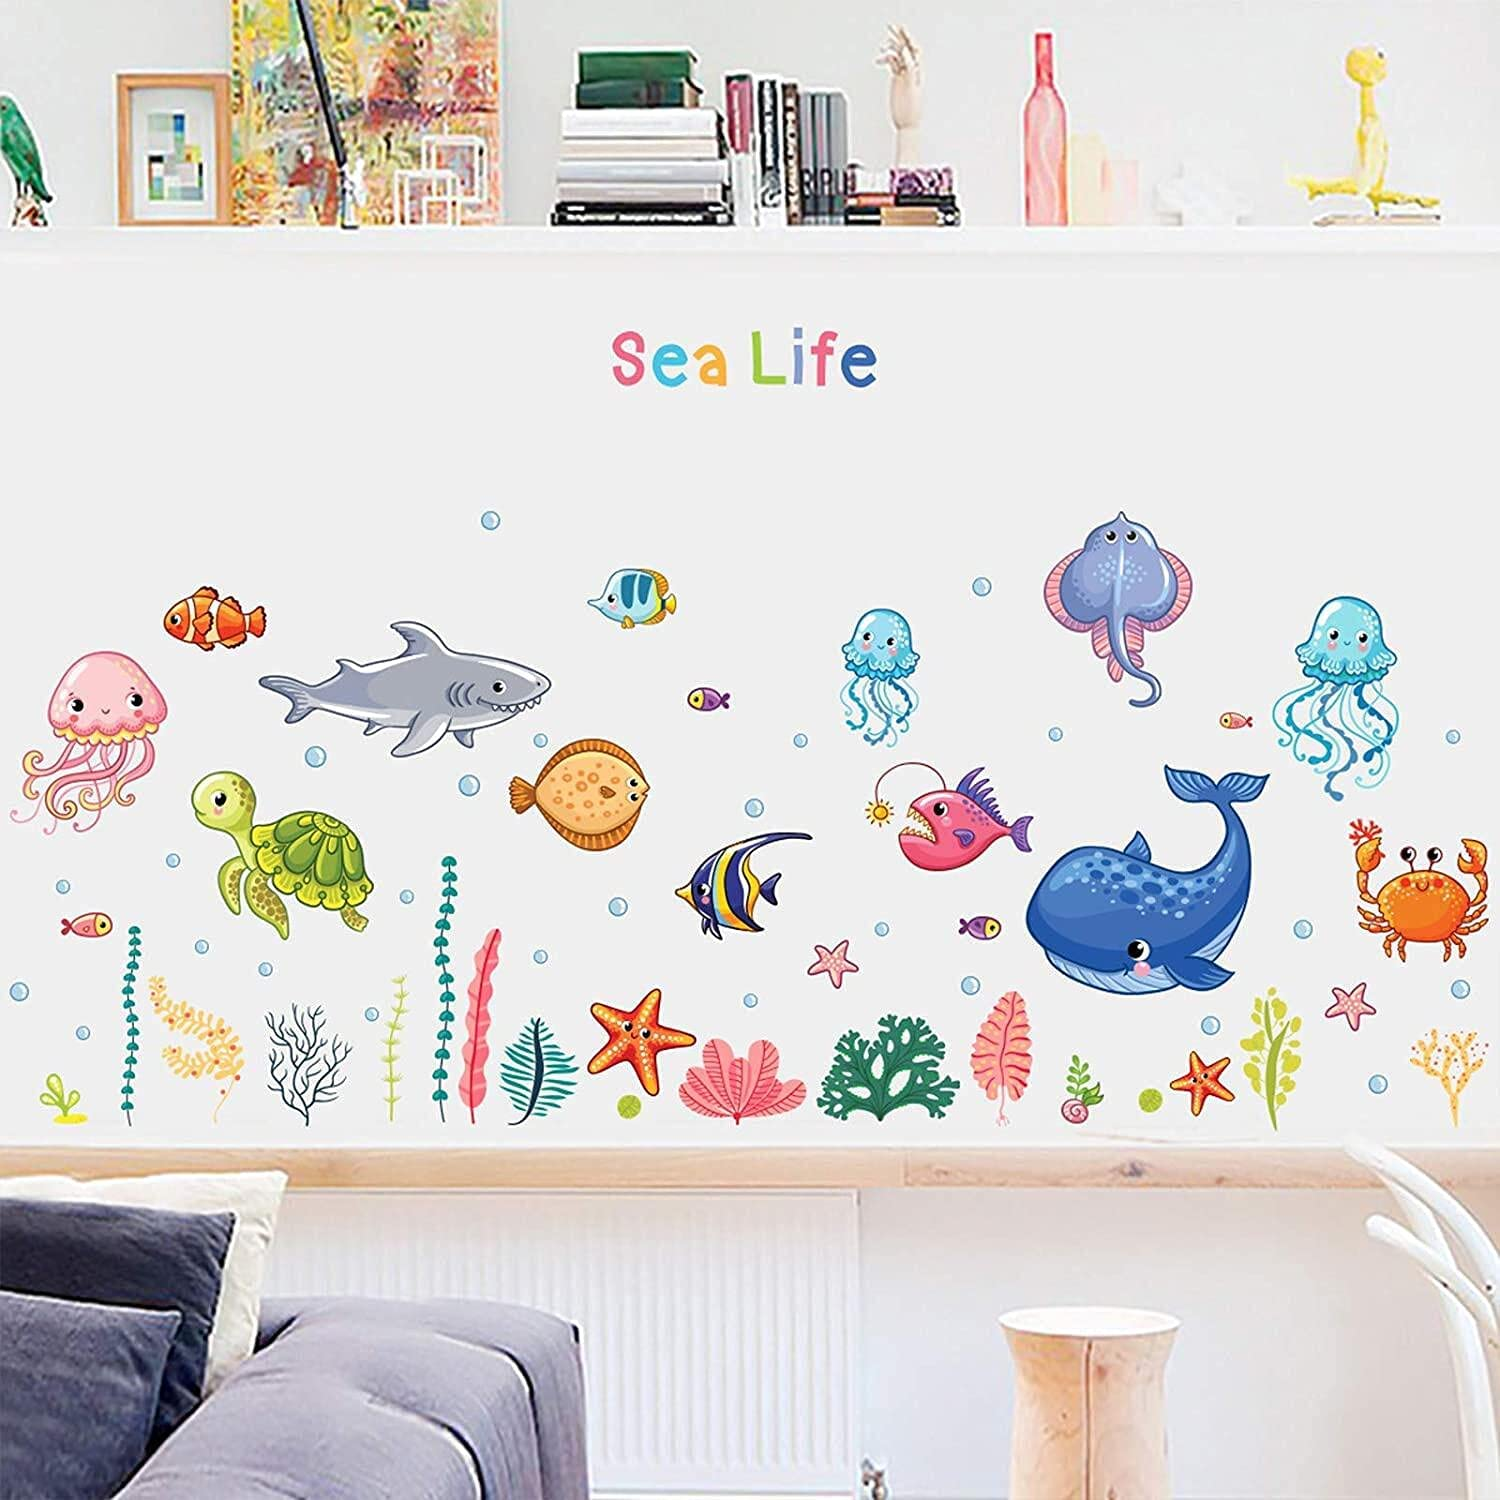 Cartoon Sea Life Wall Decals, HOLENGS Ocean World Peel and Stick Removable Wall Stickers, DIY Under The Sea Fish Wall Decor for Kids Girls Baby Bedroom Classroom Nursery Home Decoration